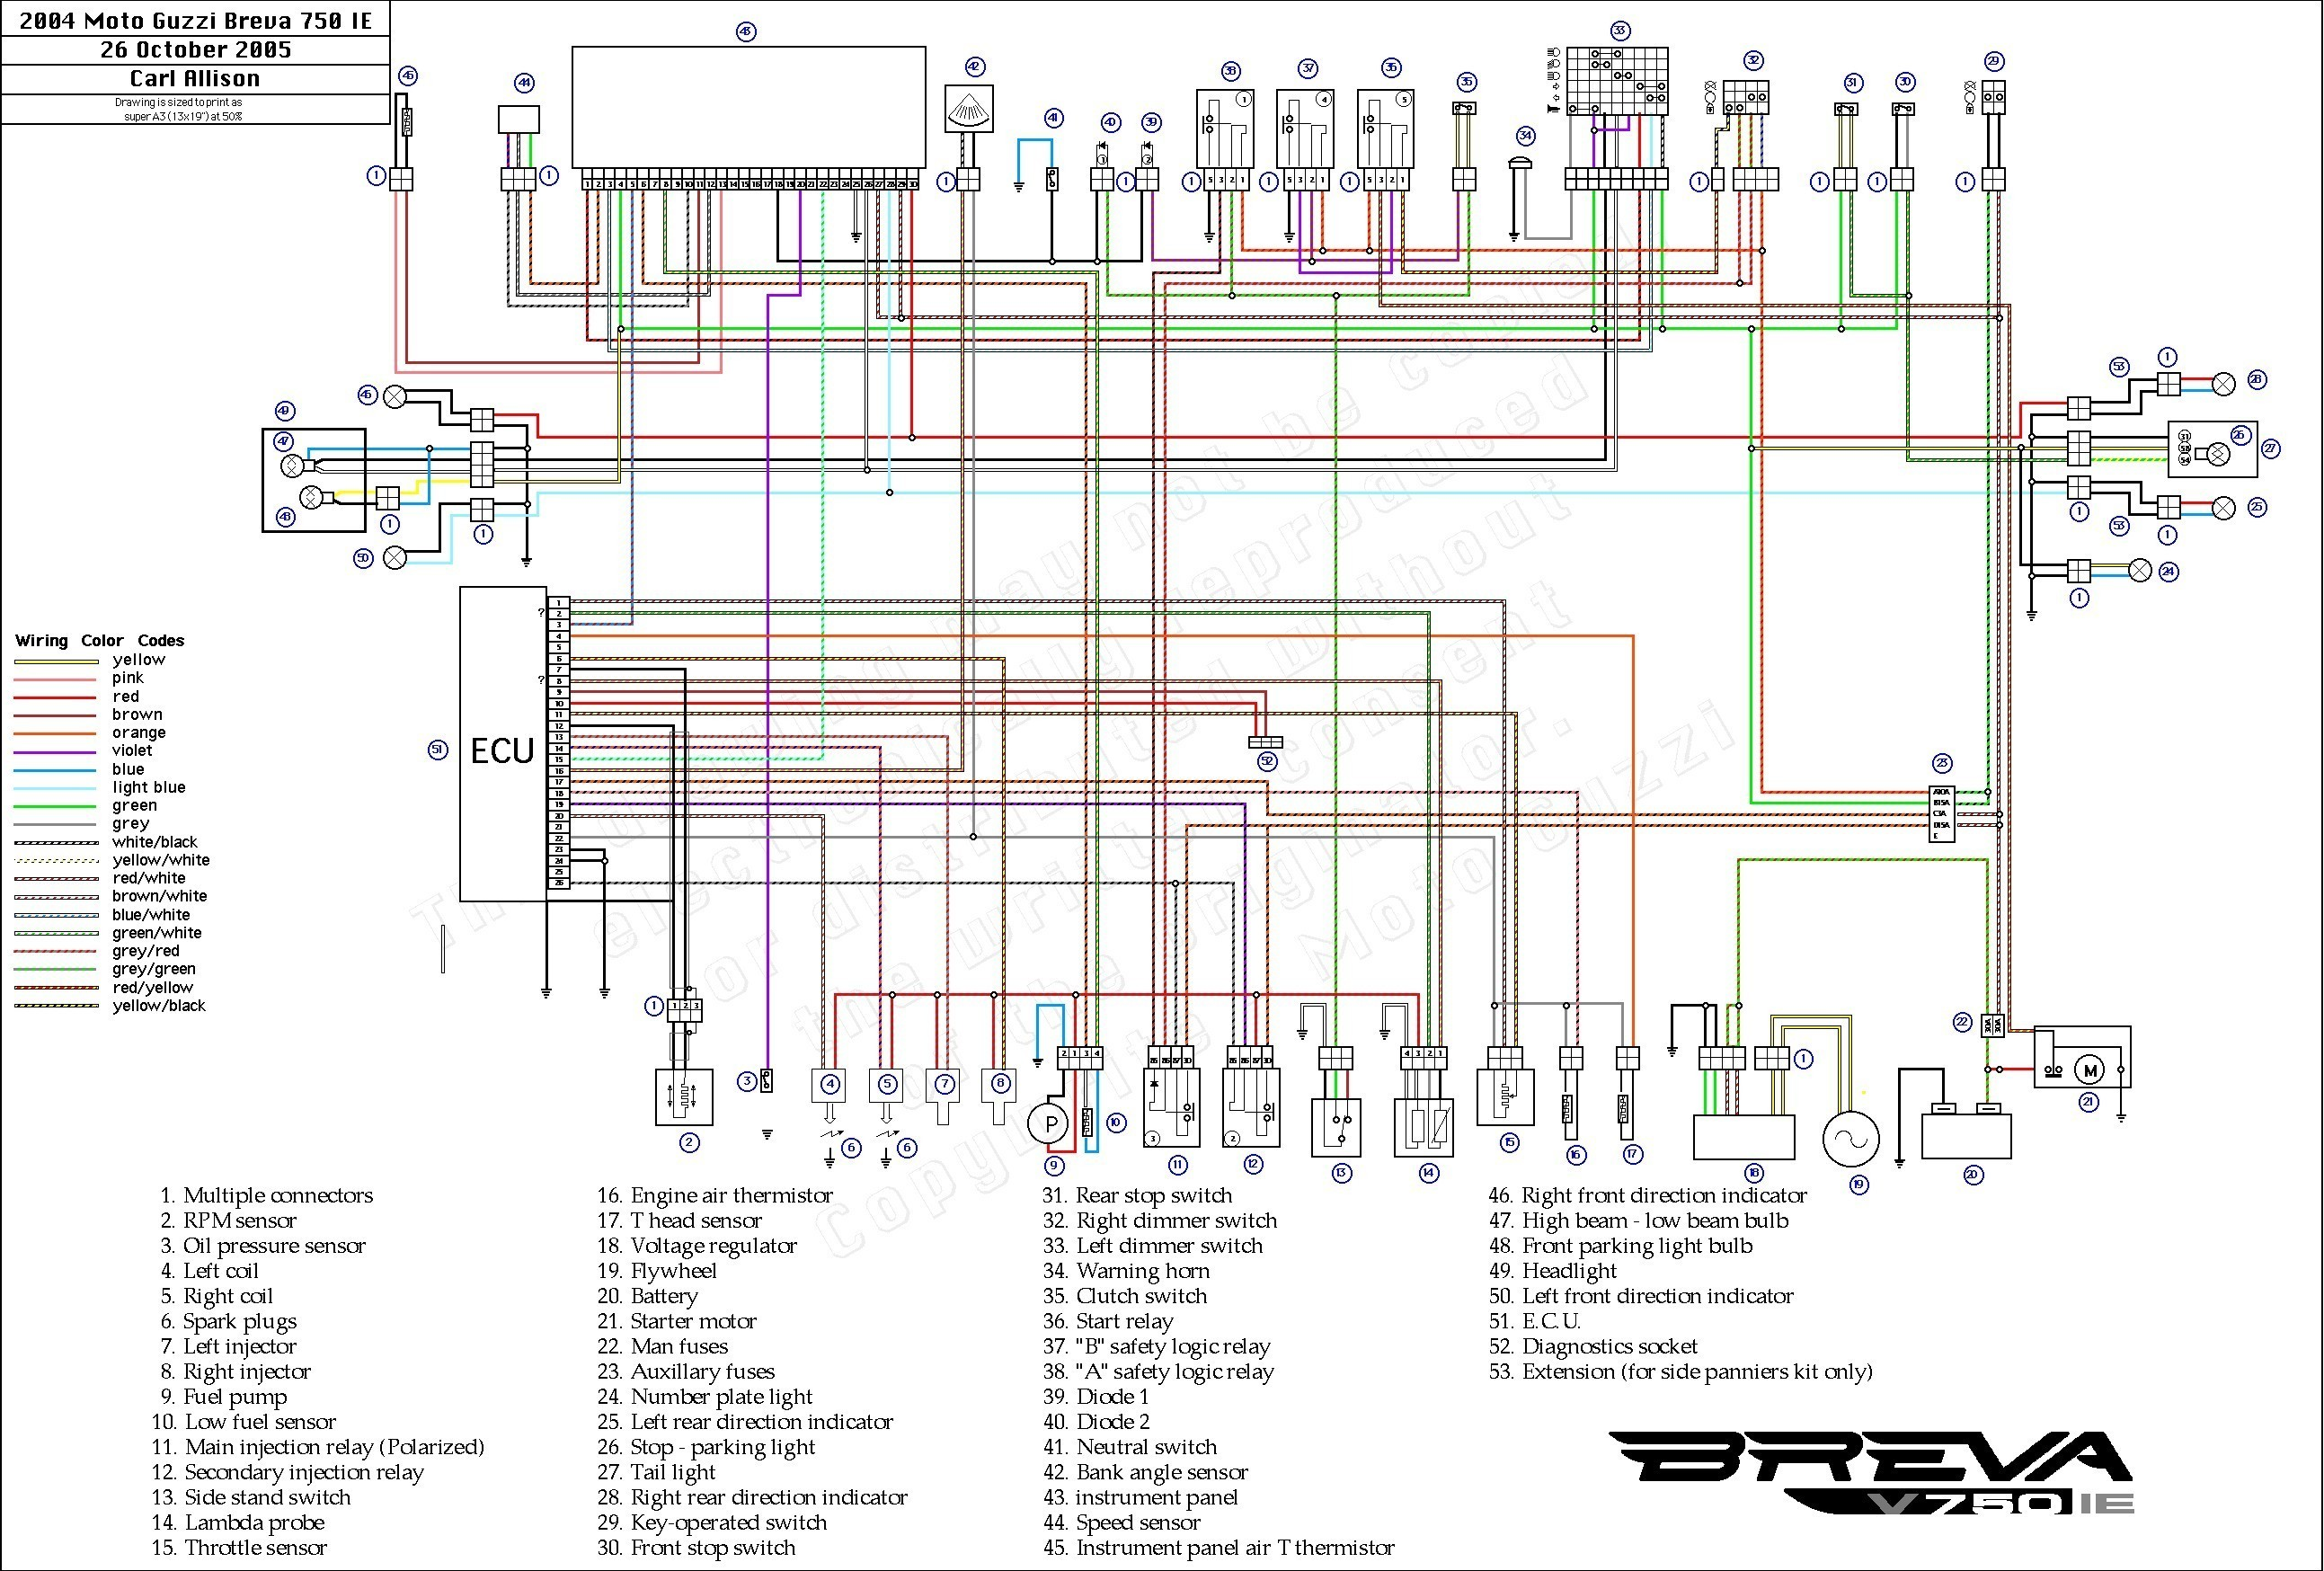 Dodge Neon Engine Diagram 2002 Dodge 2 0l Engine Diagram Data Wiring Diagrams • Of Dodge Neon Engine Diagram